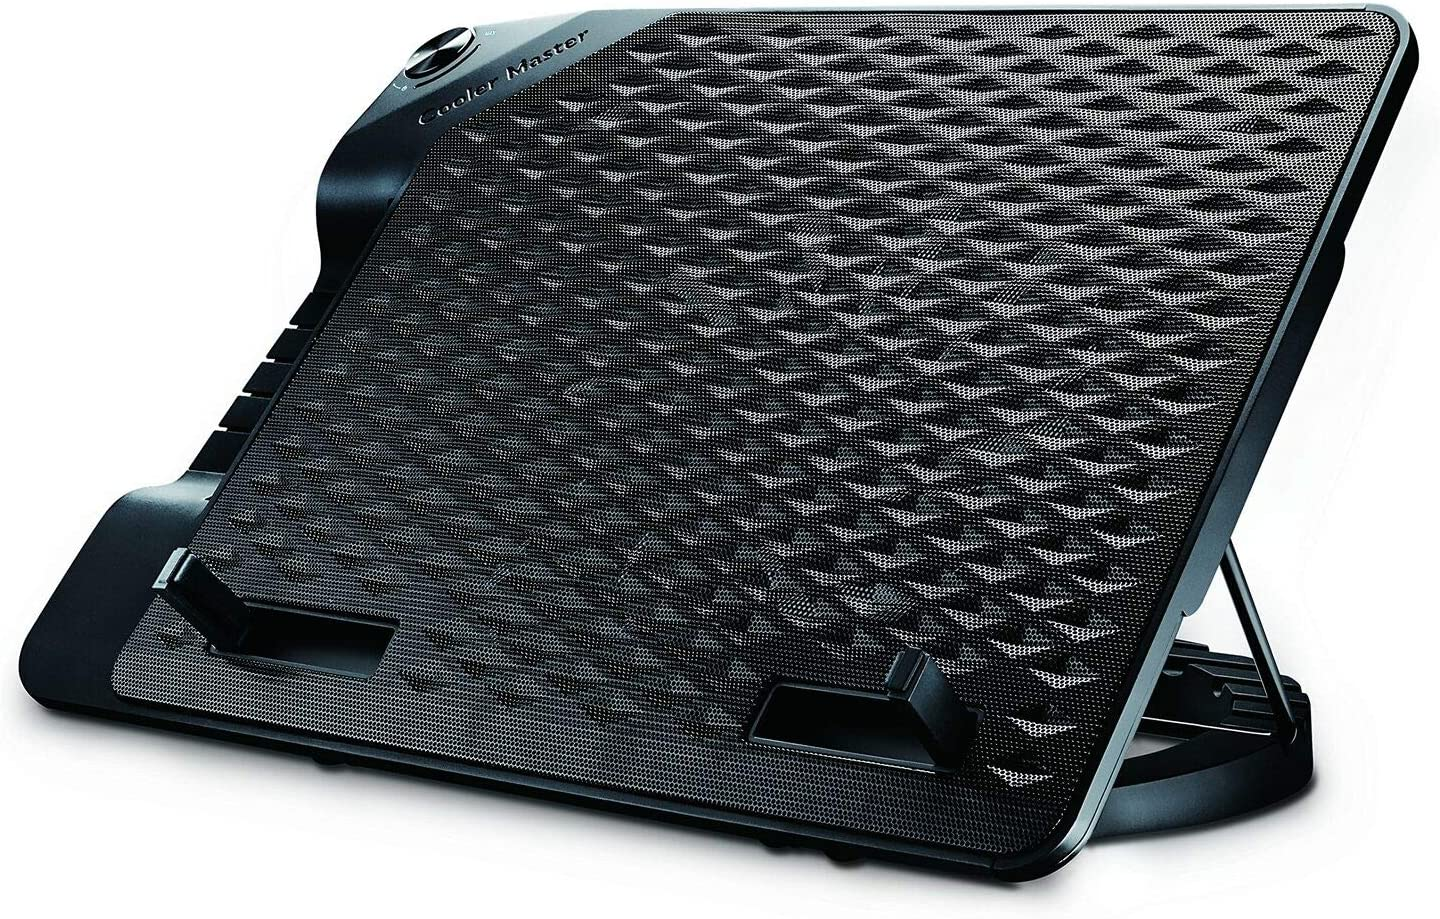 CoolerMaster Laptop Cooler Ergostand III Laptop Cooling Stand with Cooling Fan